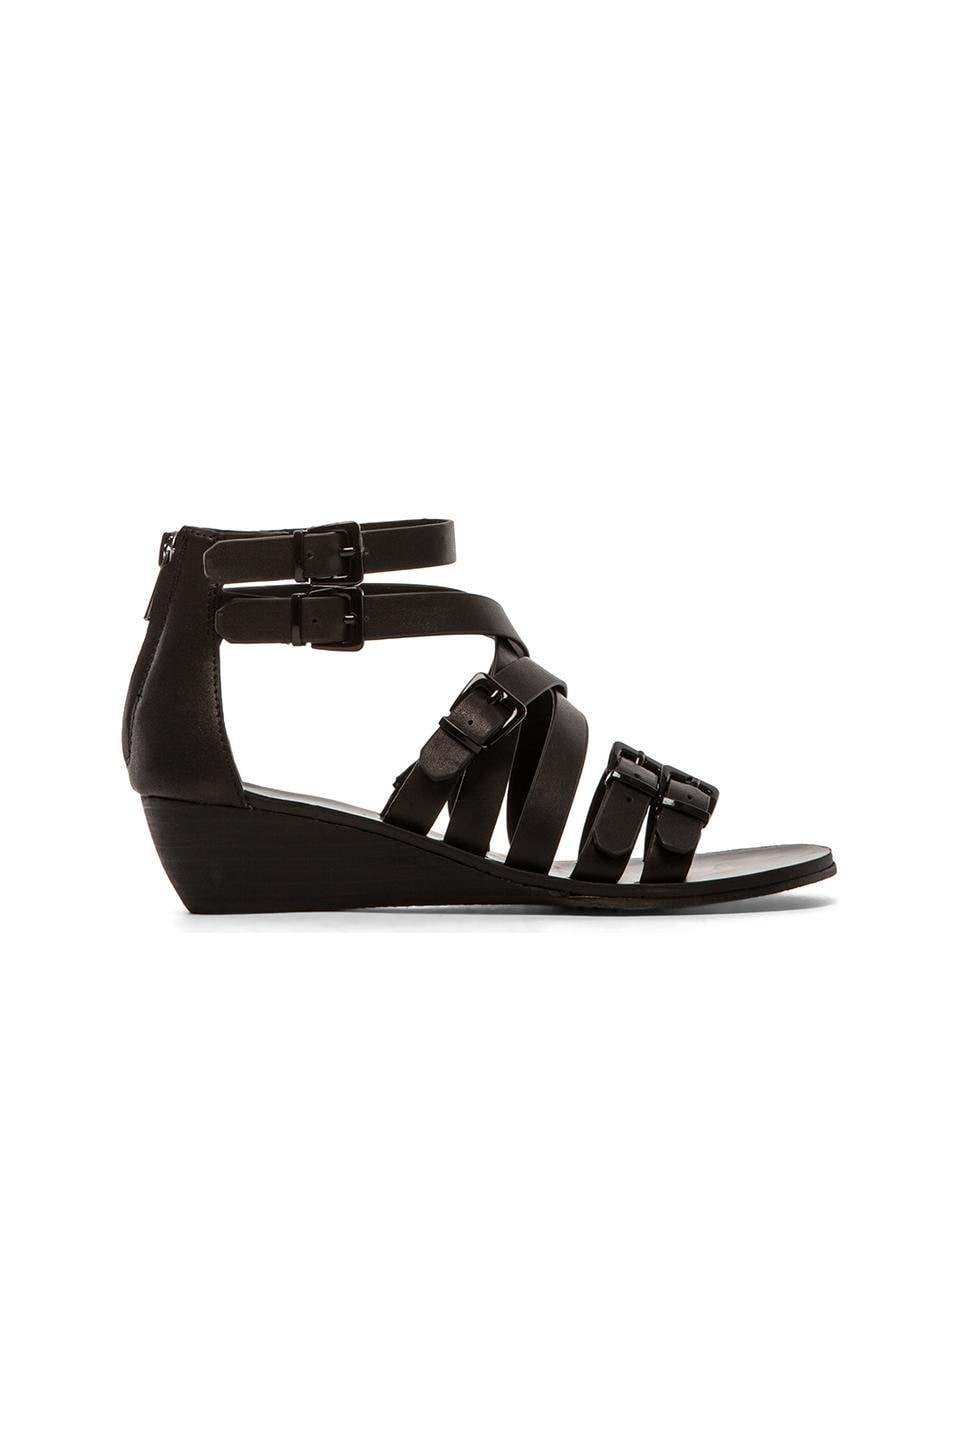 Kelsi Dagger Arlington Sandal in Black